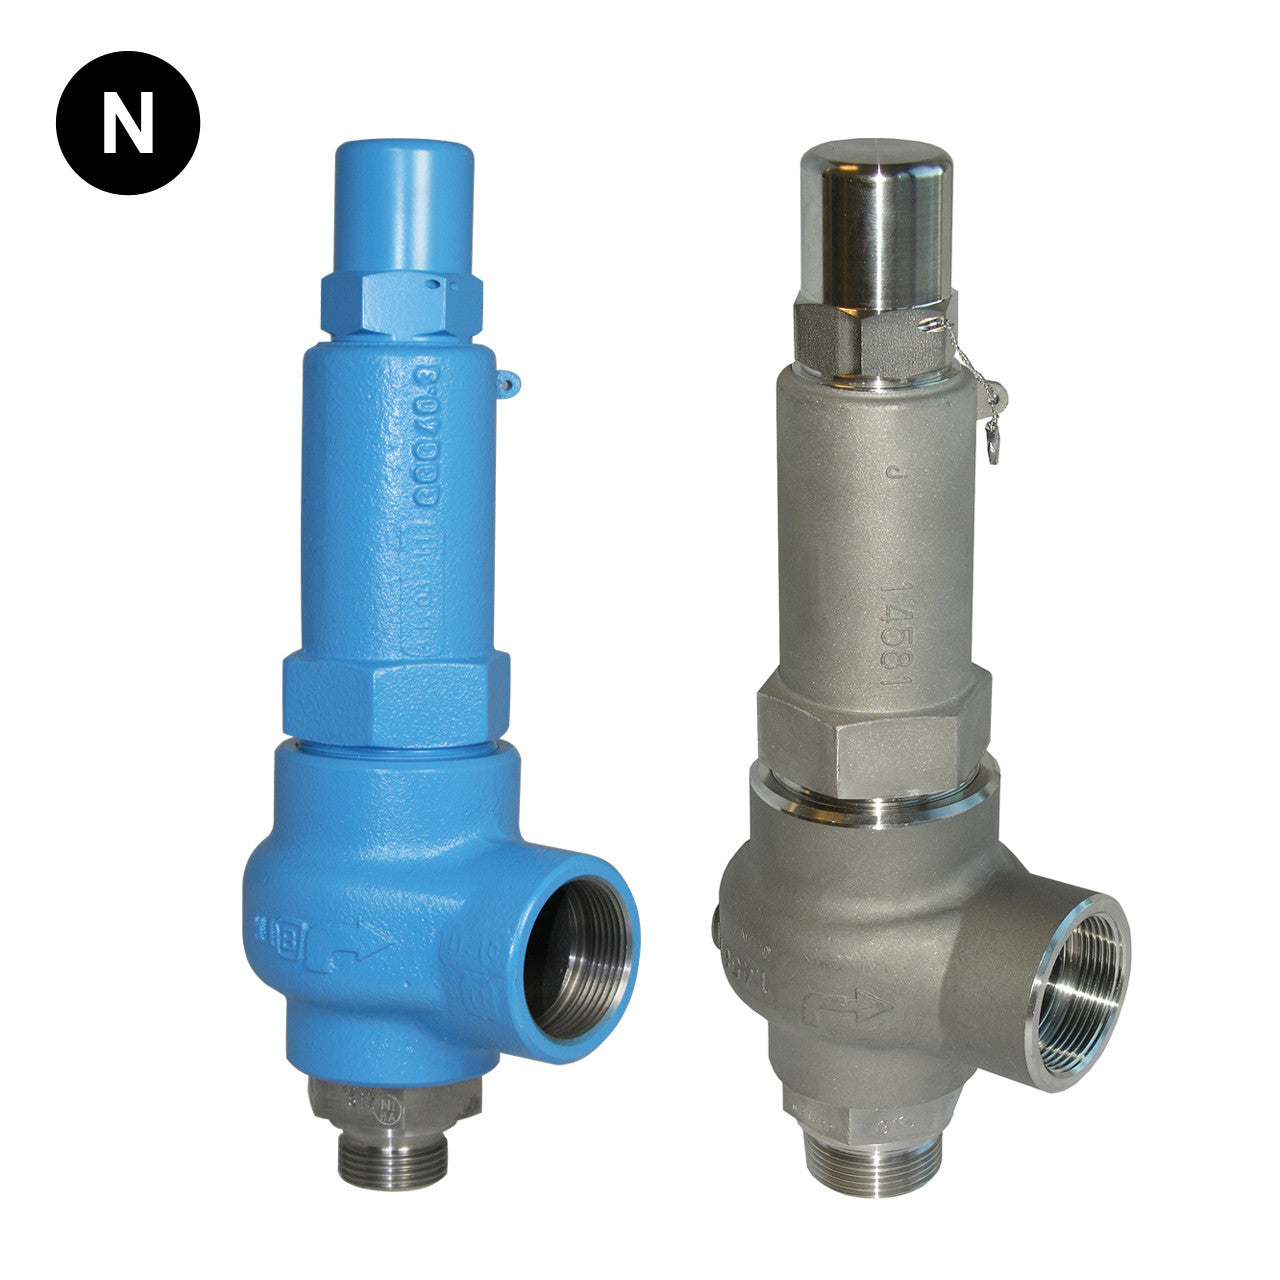 Safety valve with pressure control: types 72